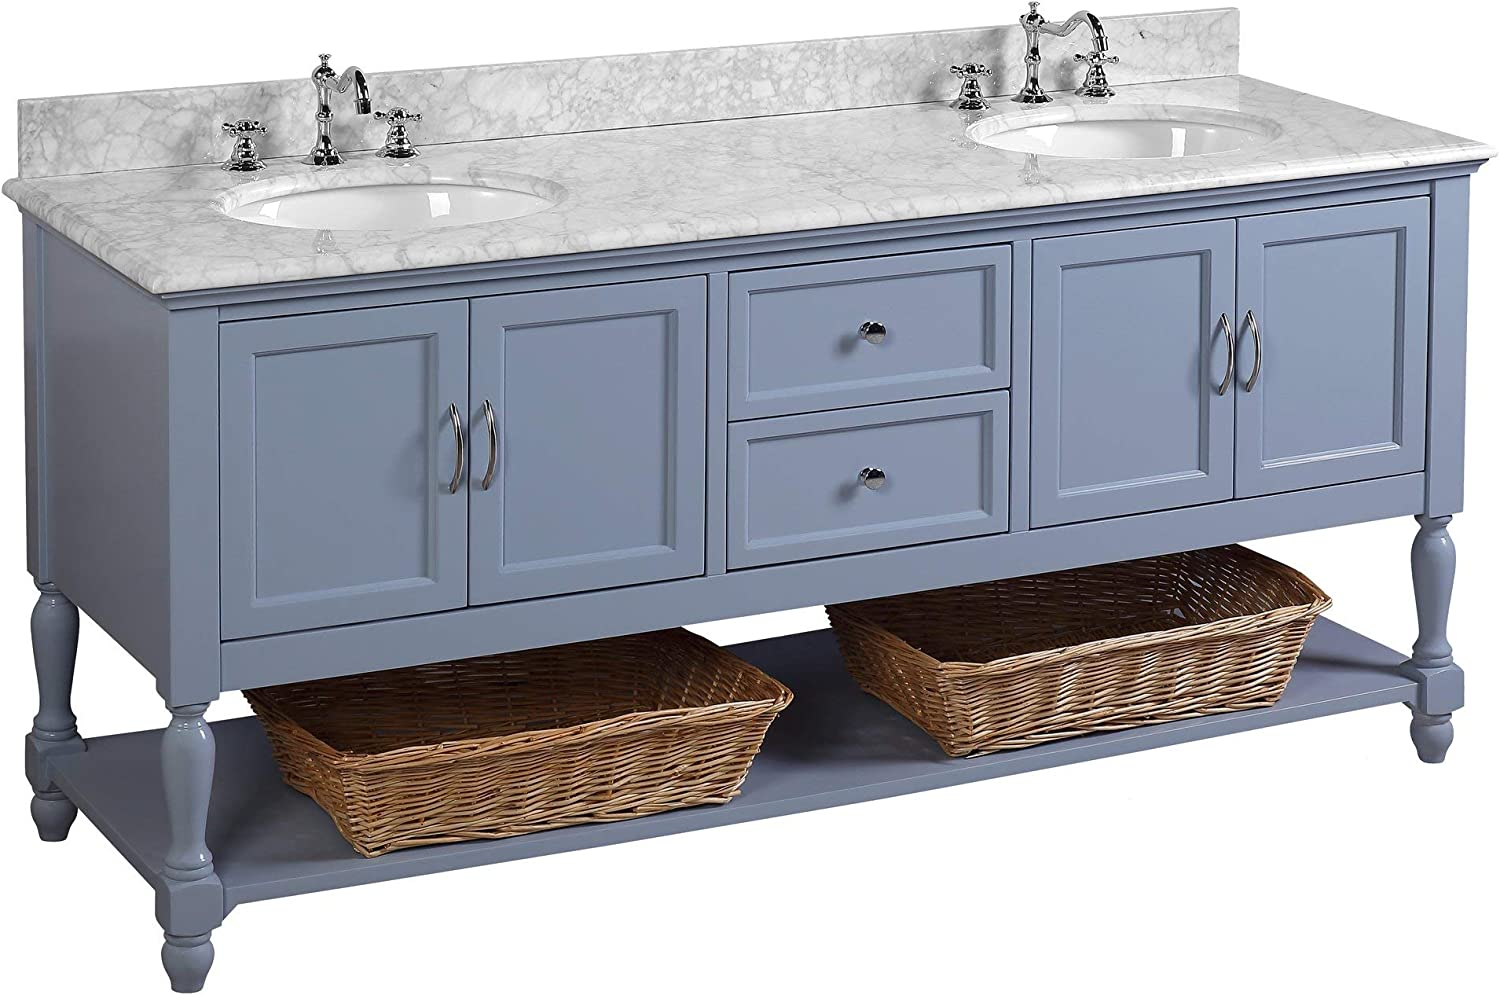 Amazon Com Beverly 72 Inch Double Bathroom Vanity Carrara Powder Blue Includes Powder Blue Cabinet With Authentic Italian Carrara Marble Countertop And White Ceramic Sinks Kitchen Dining